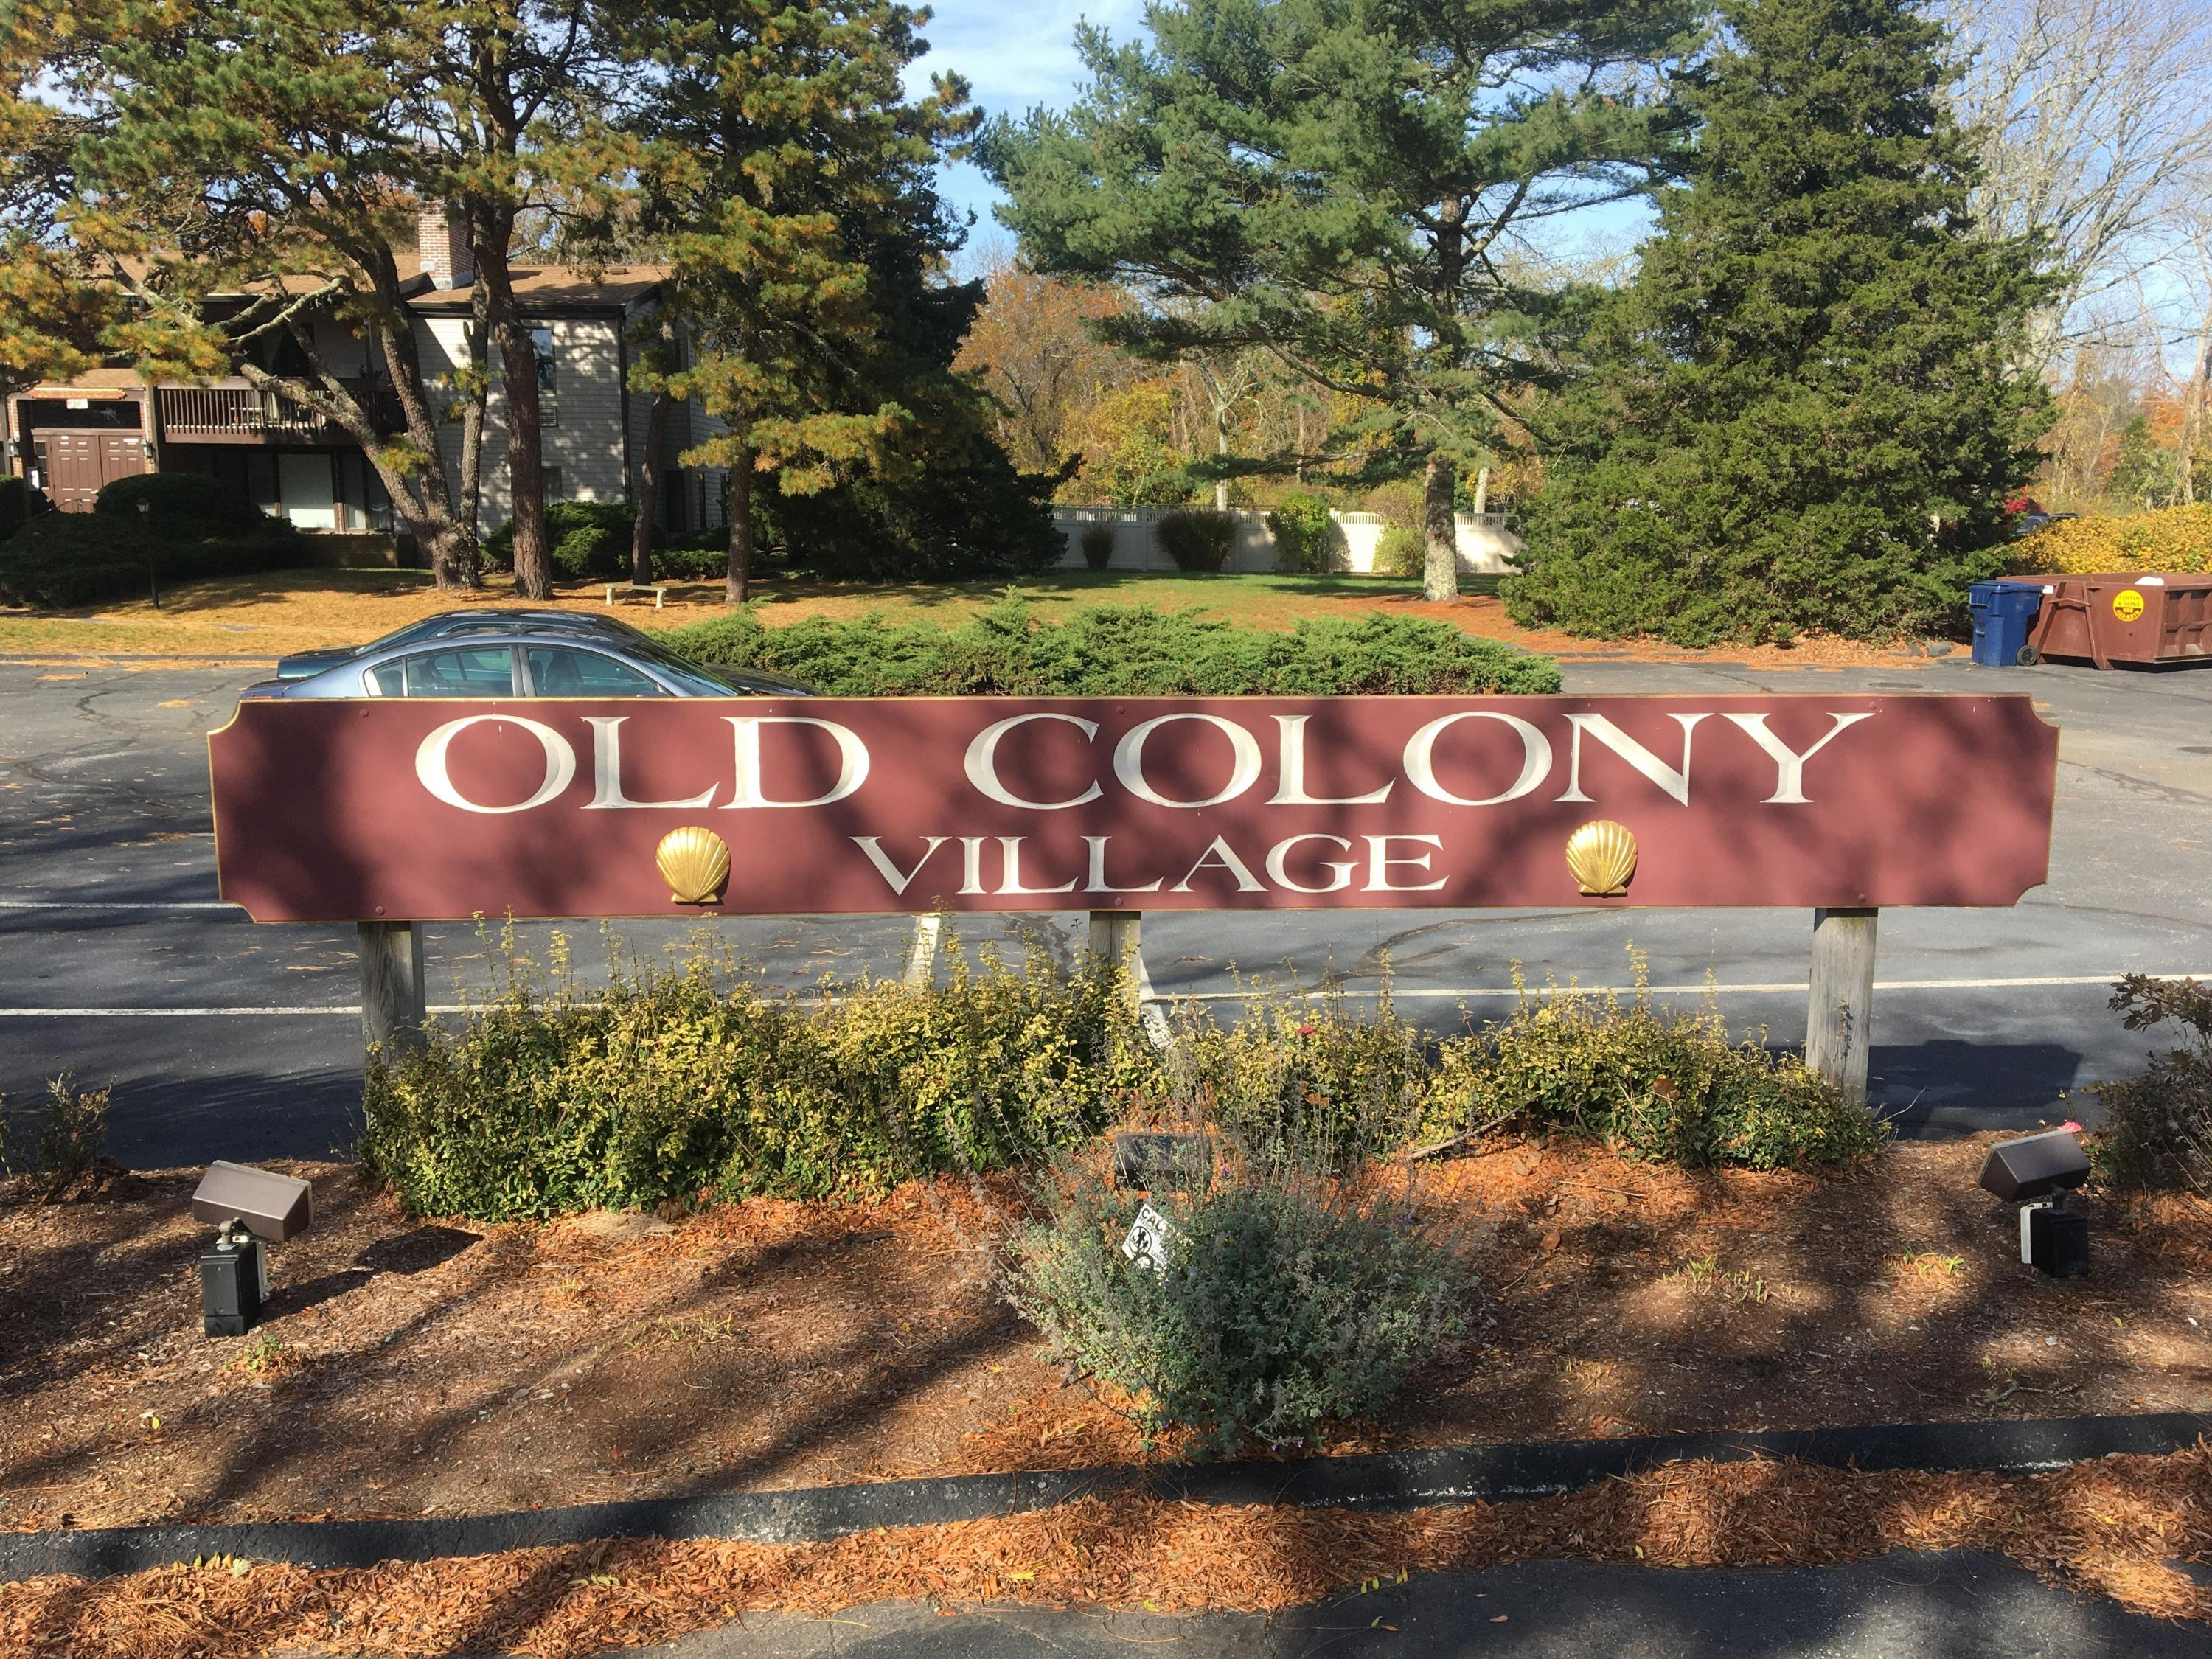 42 Old Colony Way, Orleans MA, 02653 sales details